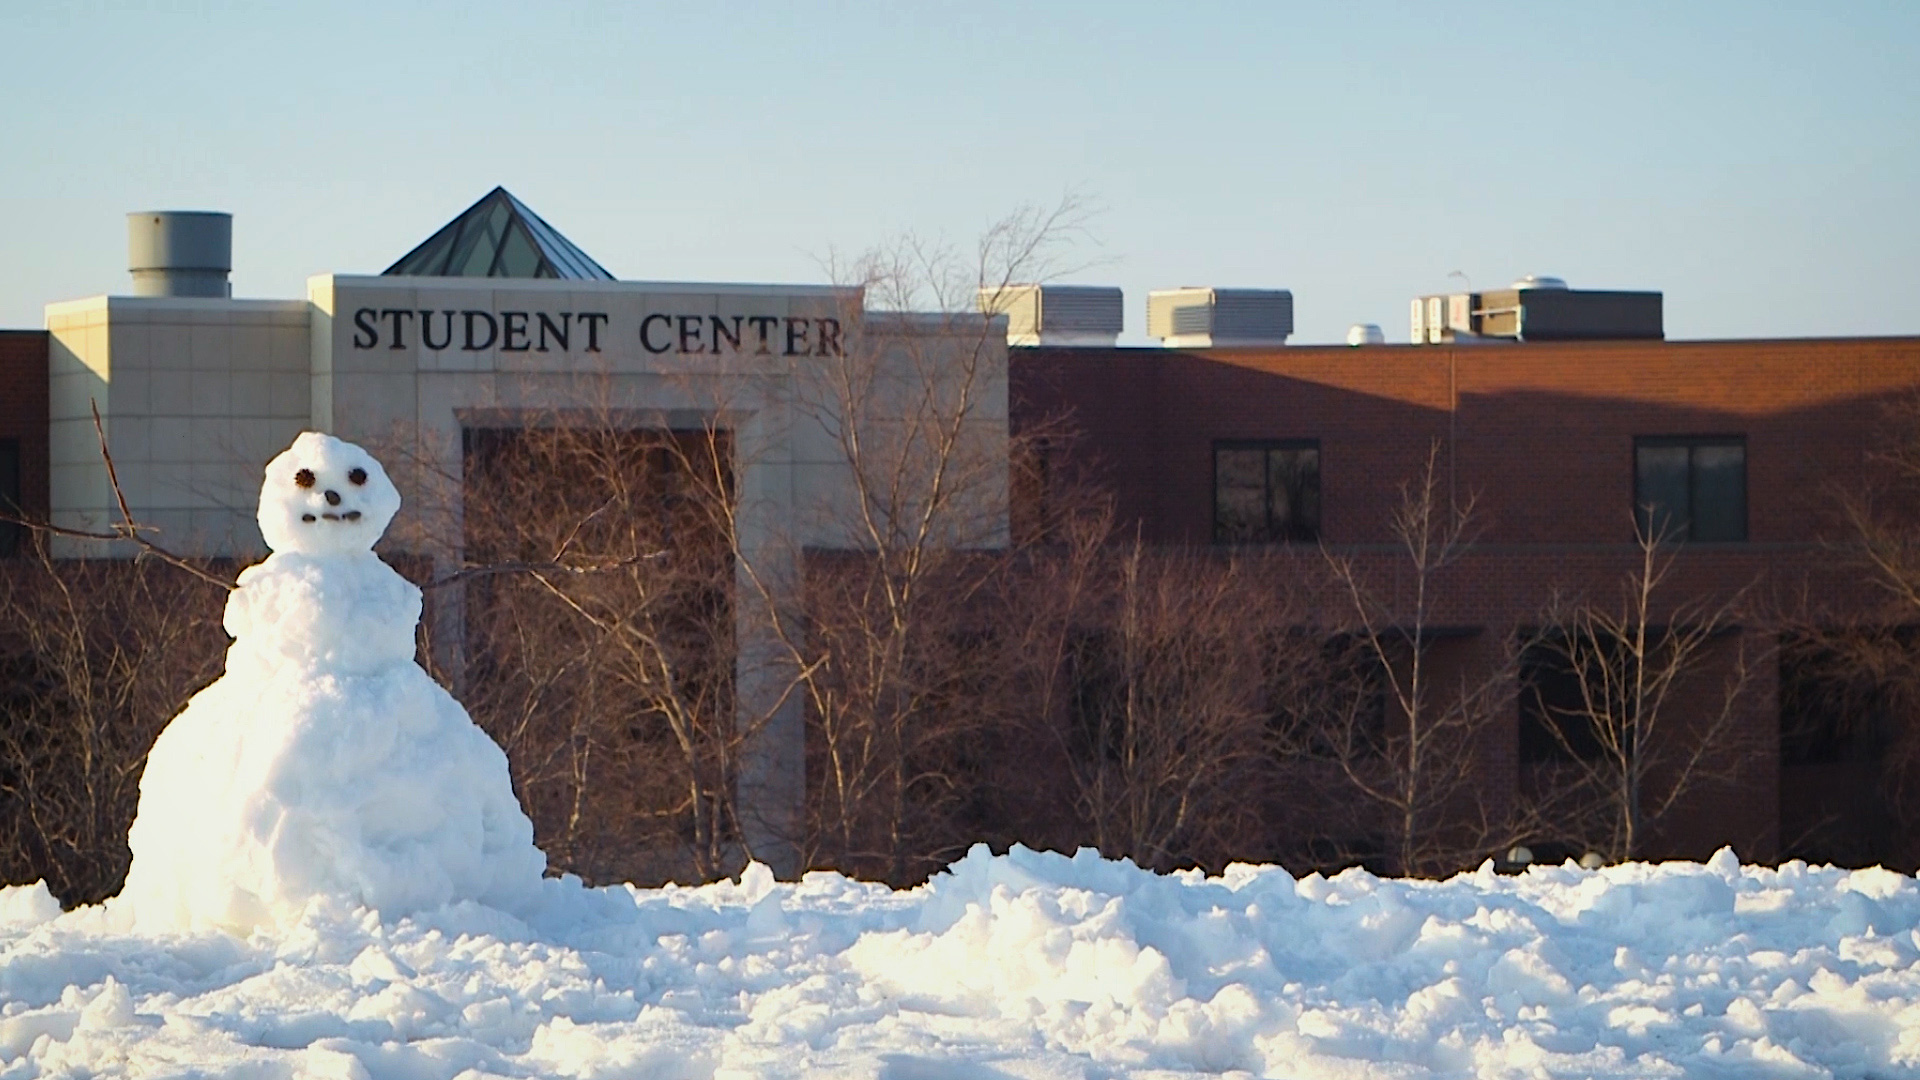 Front of the Student Center with a snowman in the foreground